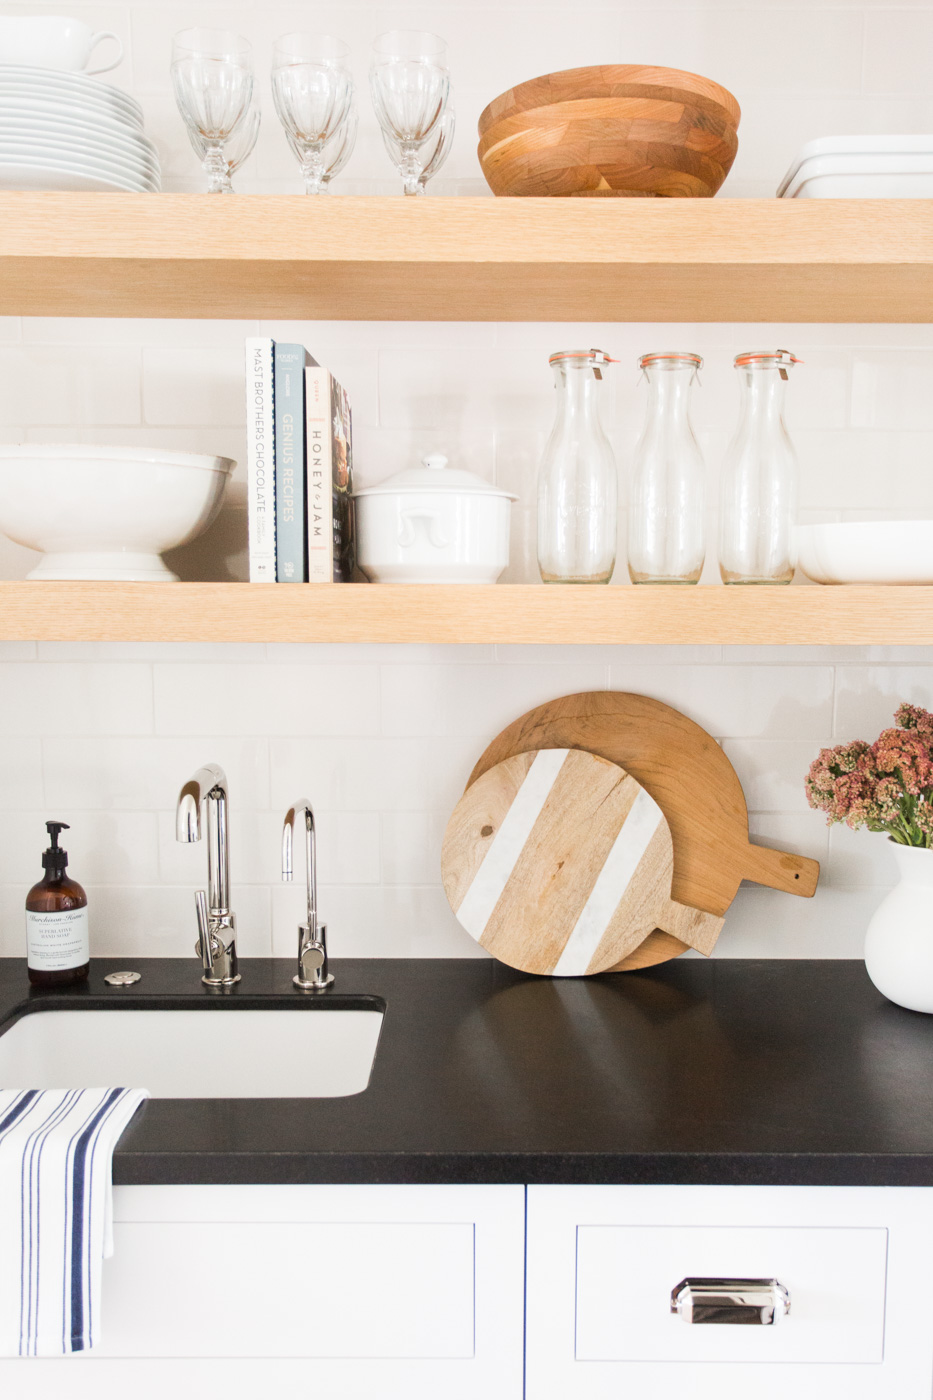 Glasses and cutting boards atop counter